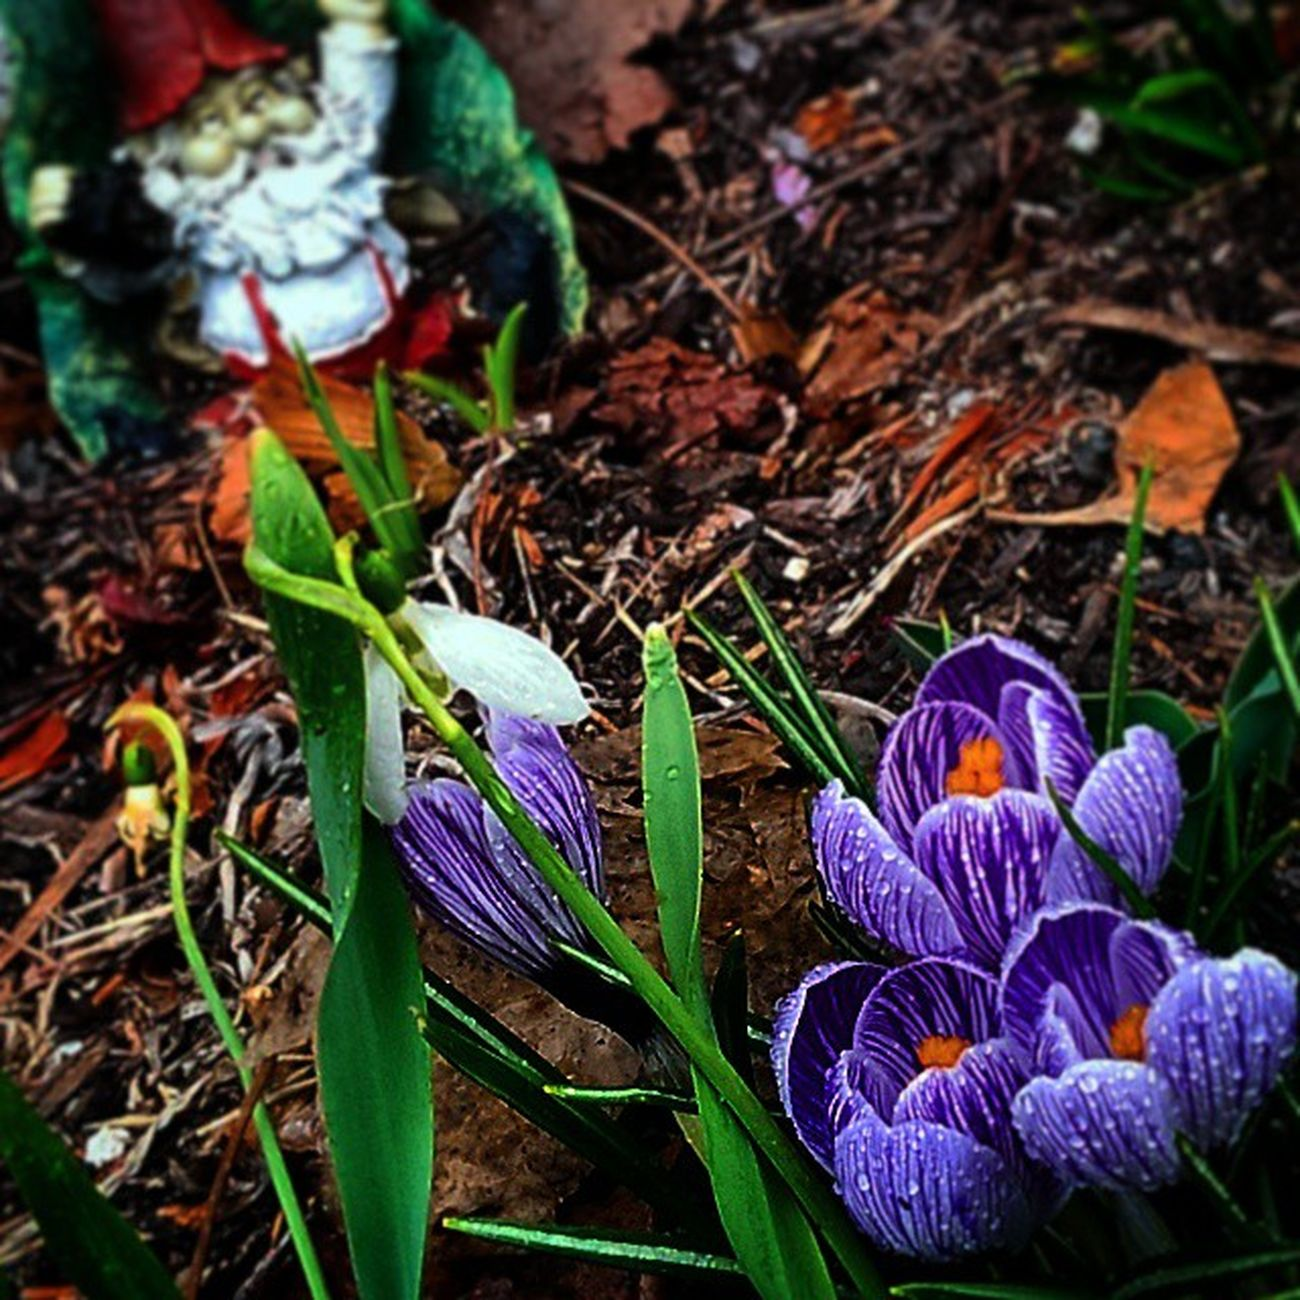 Embrace the delicate lips of spring! Igerspennsylvania Ig_pennsylvania Earthporr Spring eastcoast flowers rebirth fantasy middleearth tolkien forgottenrealms sensual gardening pinealgland thirdeye beastcoast